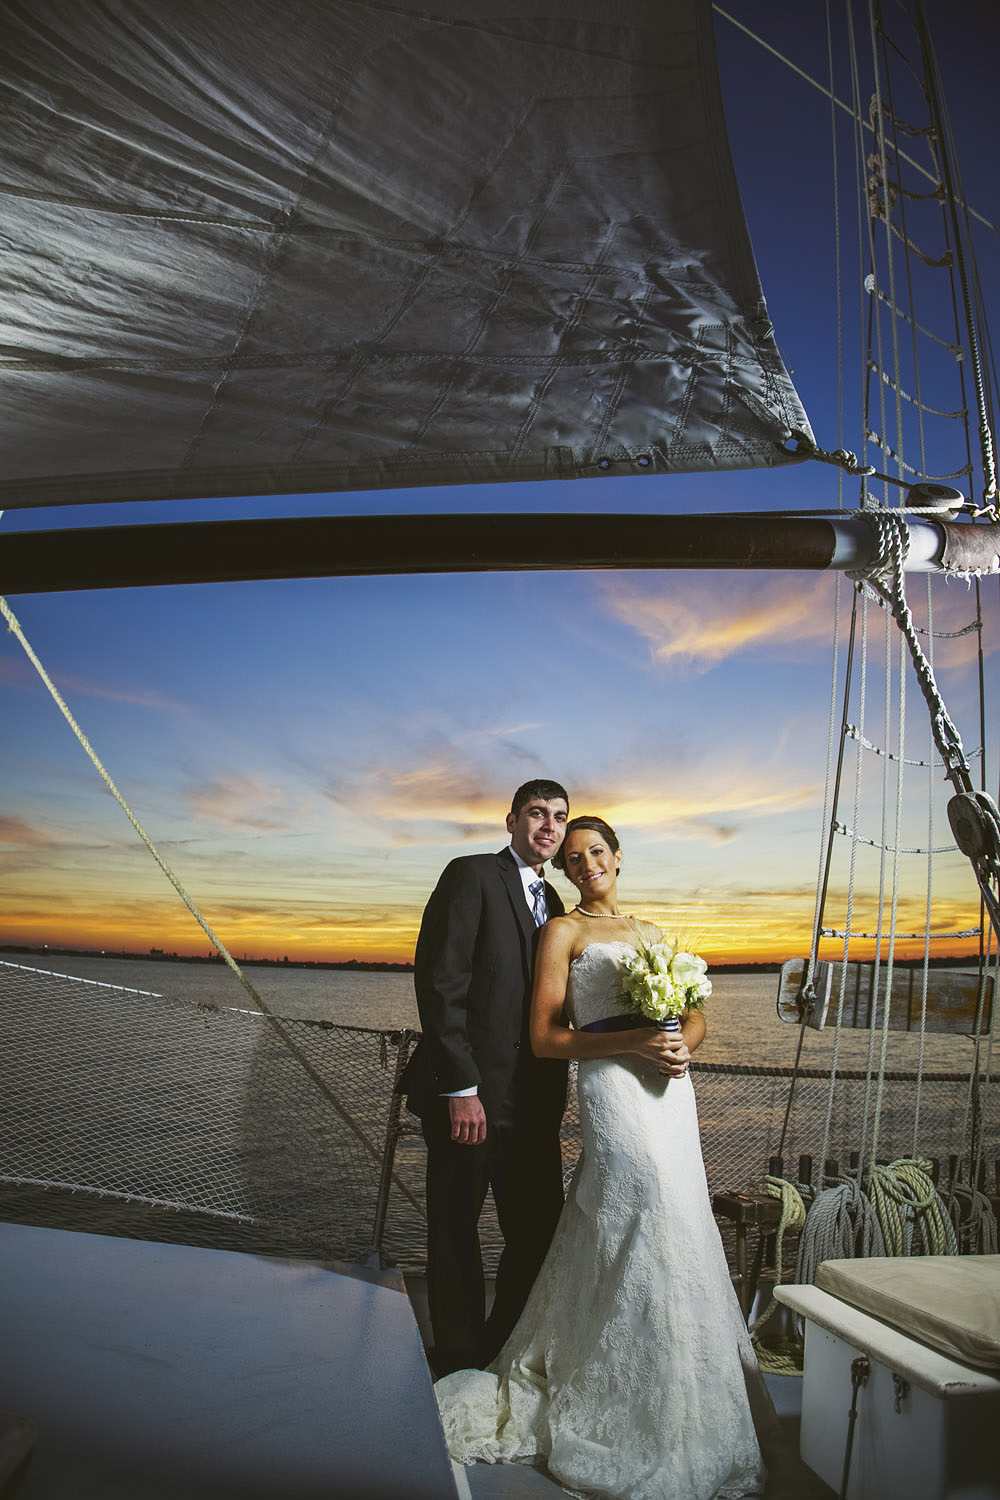 The Schooner Freedom Wedding Photo St. Augustine Fl.